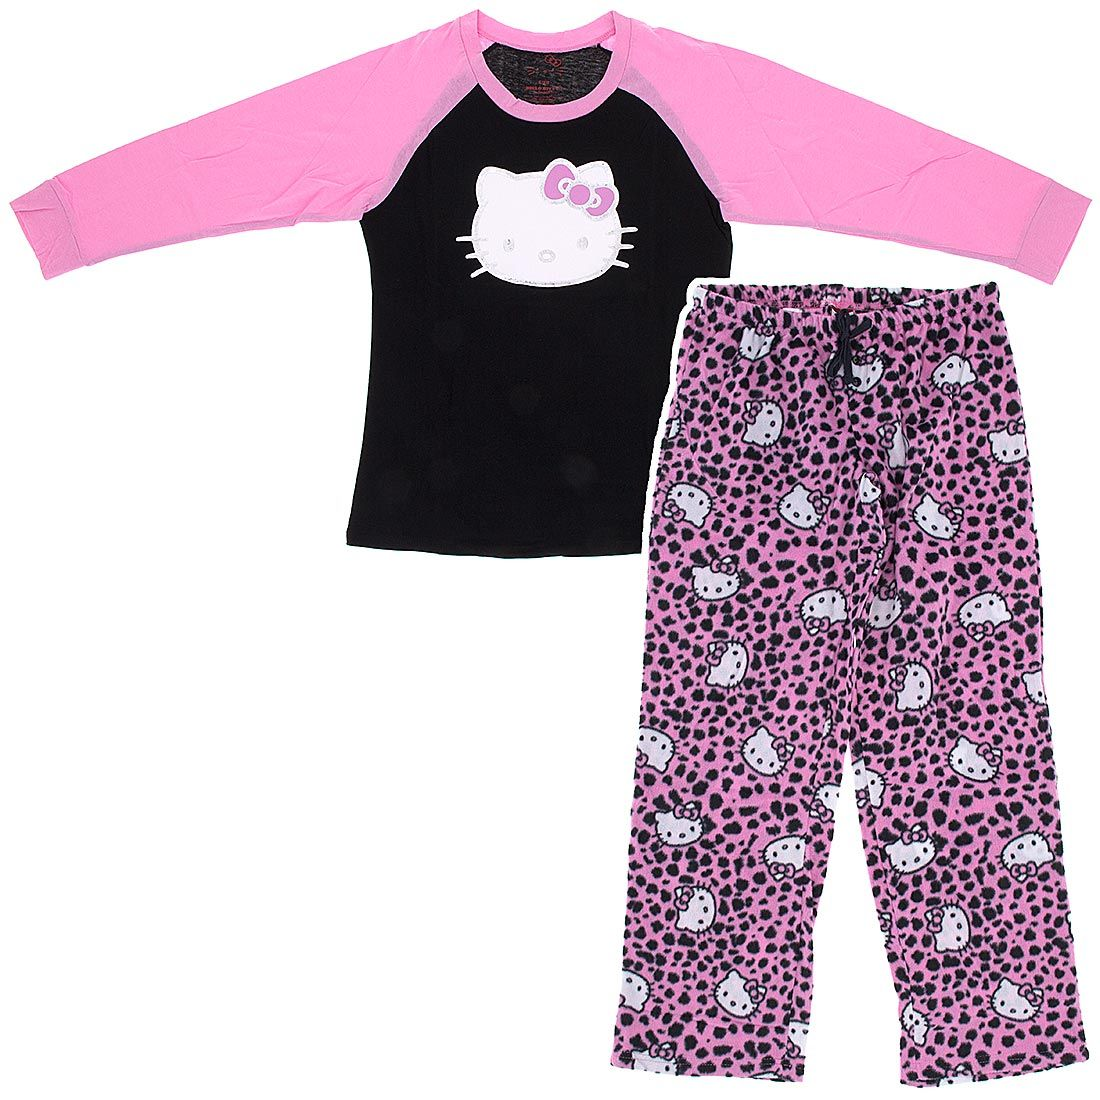 ea0652688 Barbie Pink Pajamas for Toddler Girls - Click to enlarge